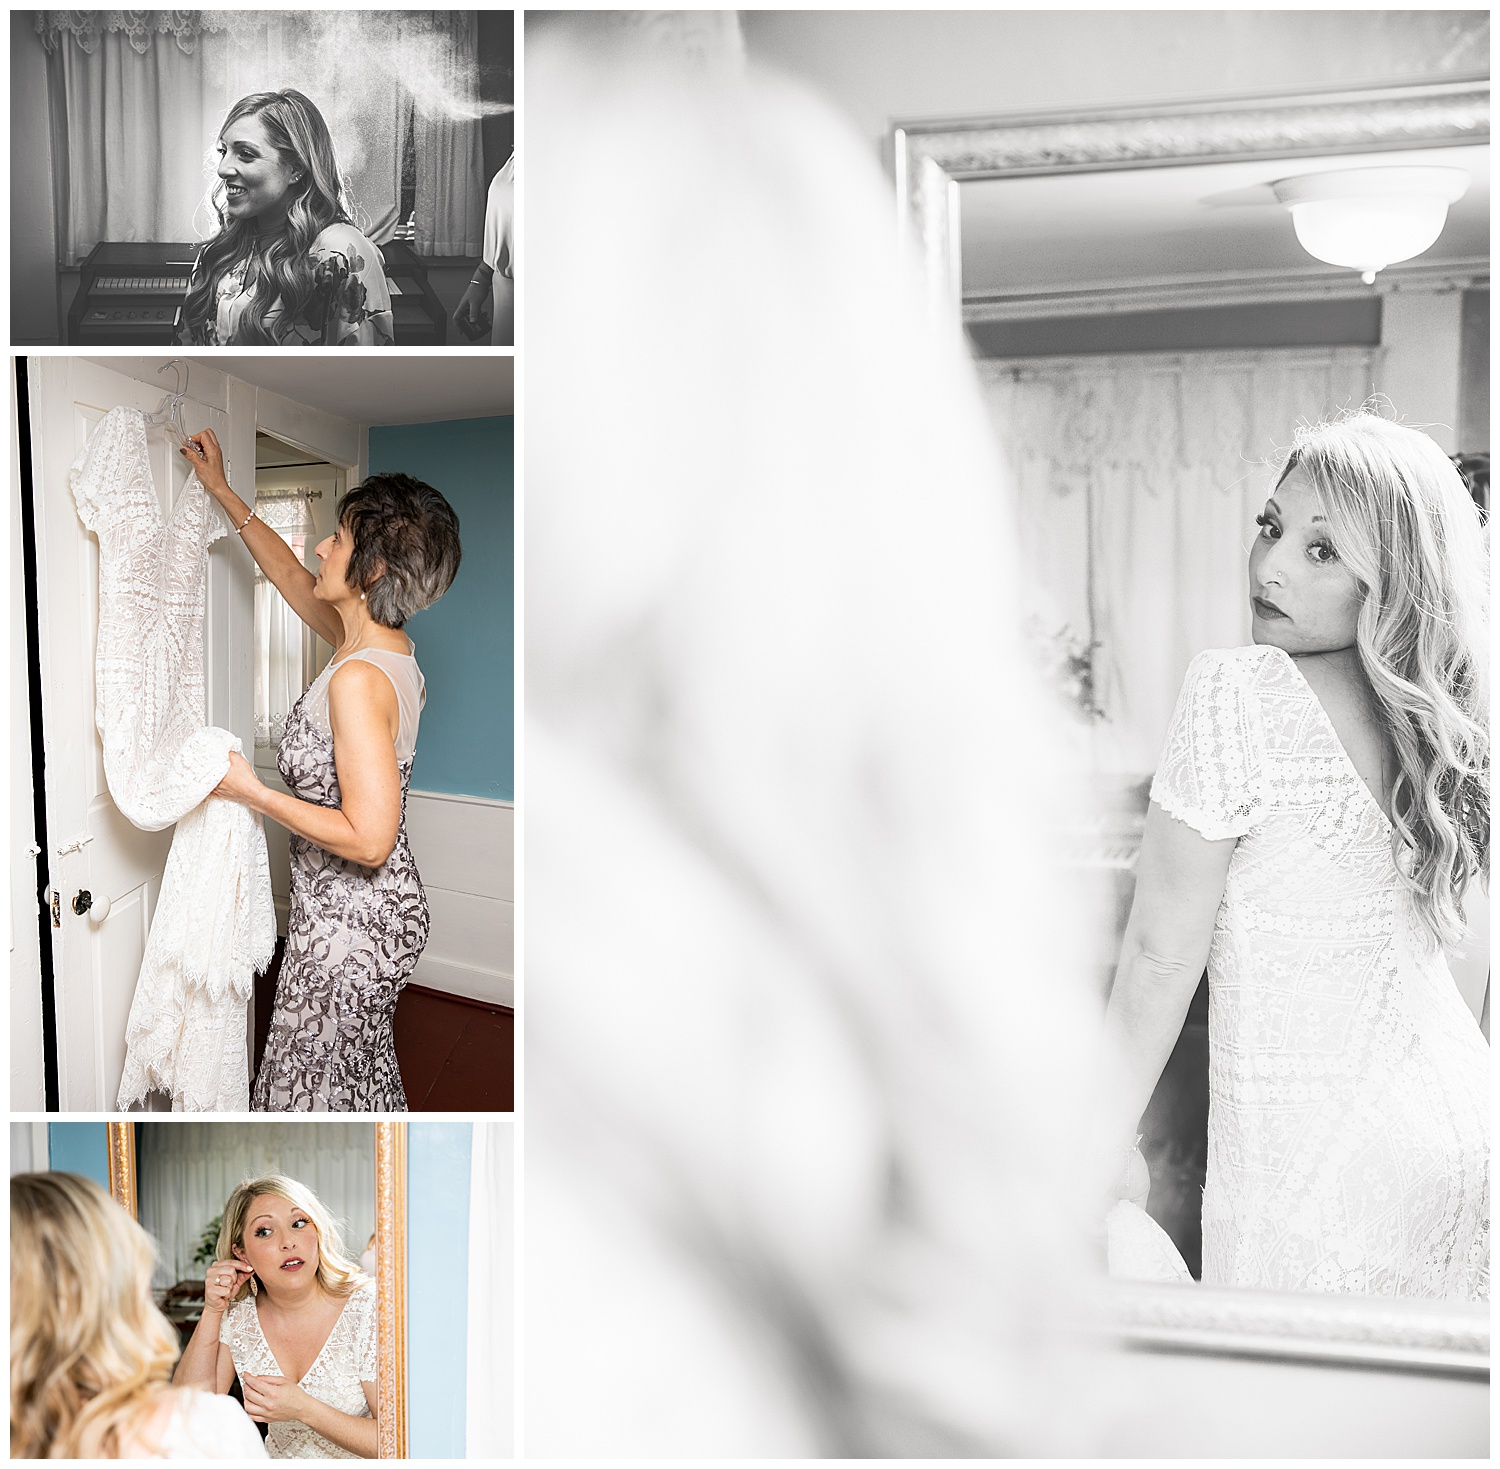 Bride getting ready,social media,